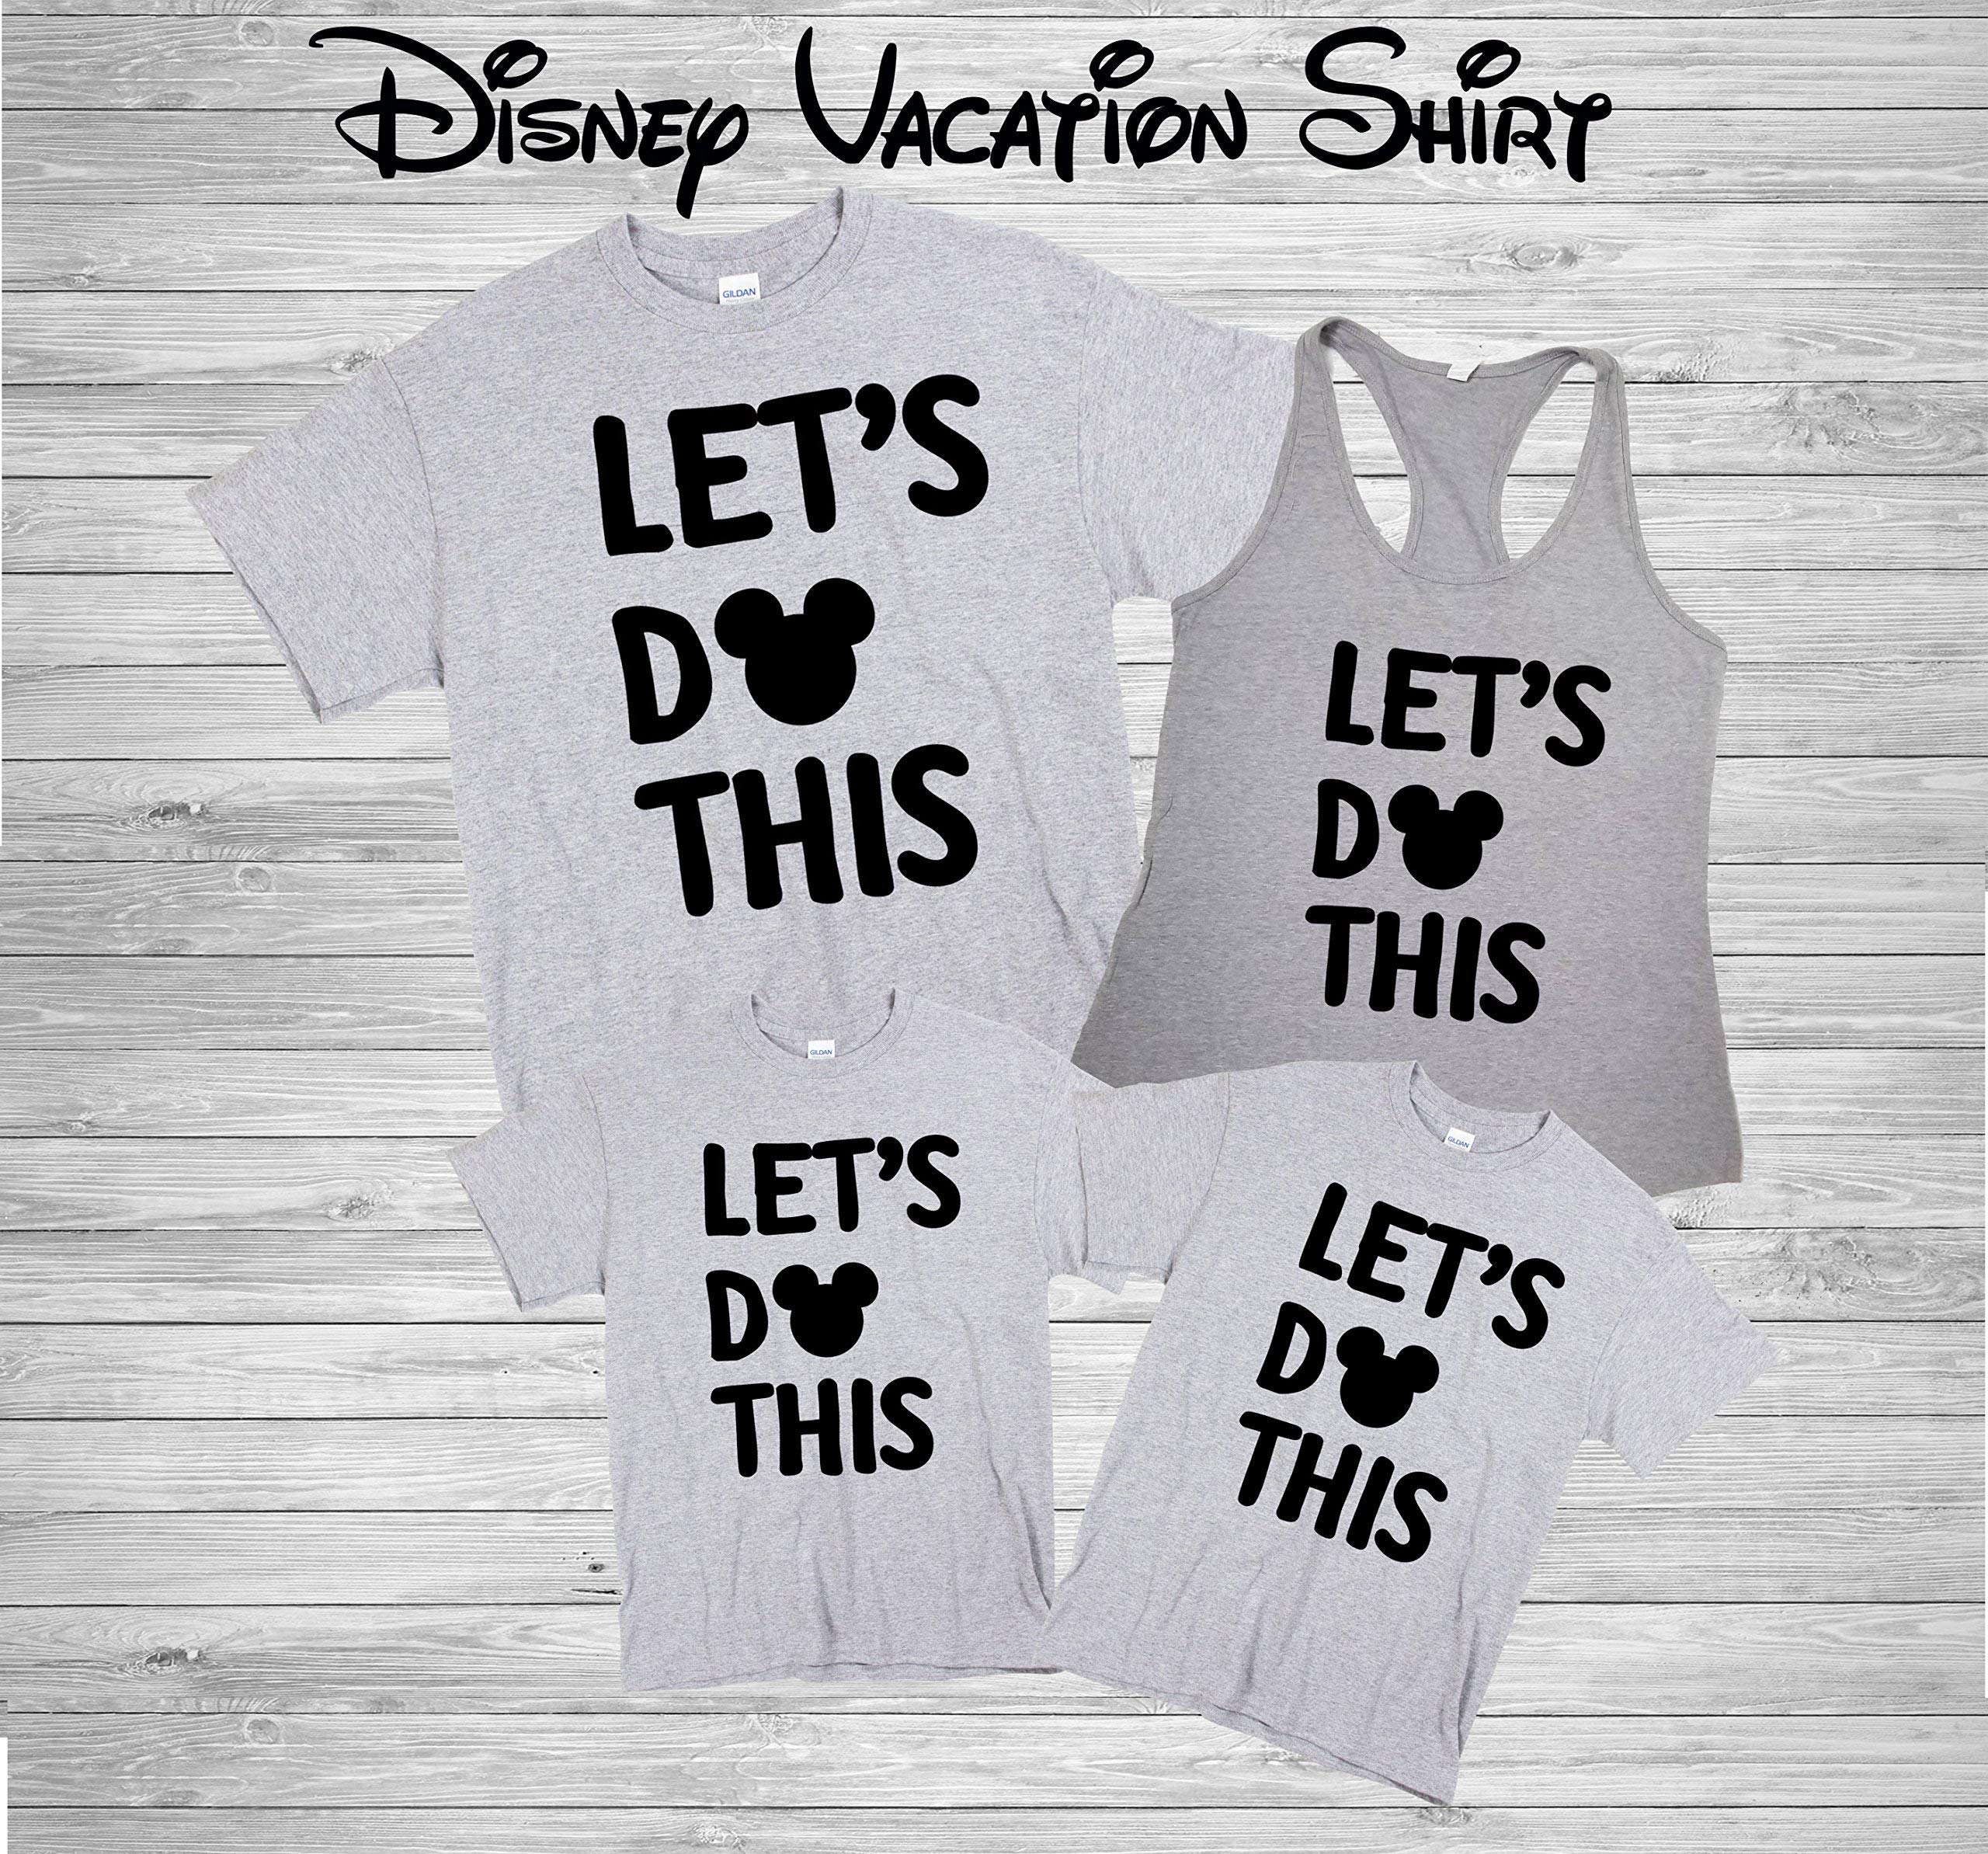 Personalized Disney Family Shirts Edge Engineering And Consulting